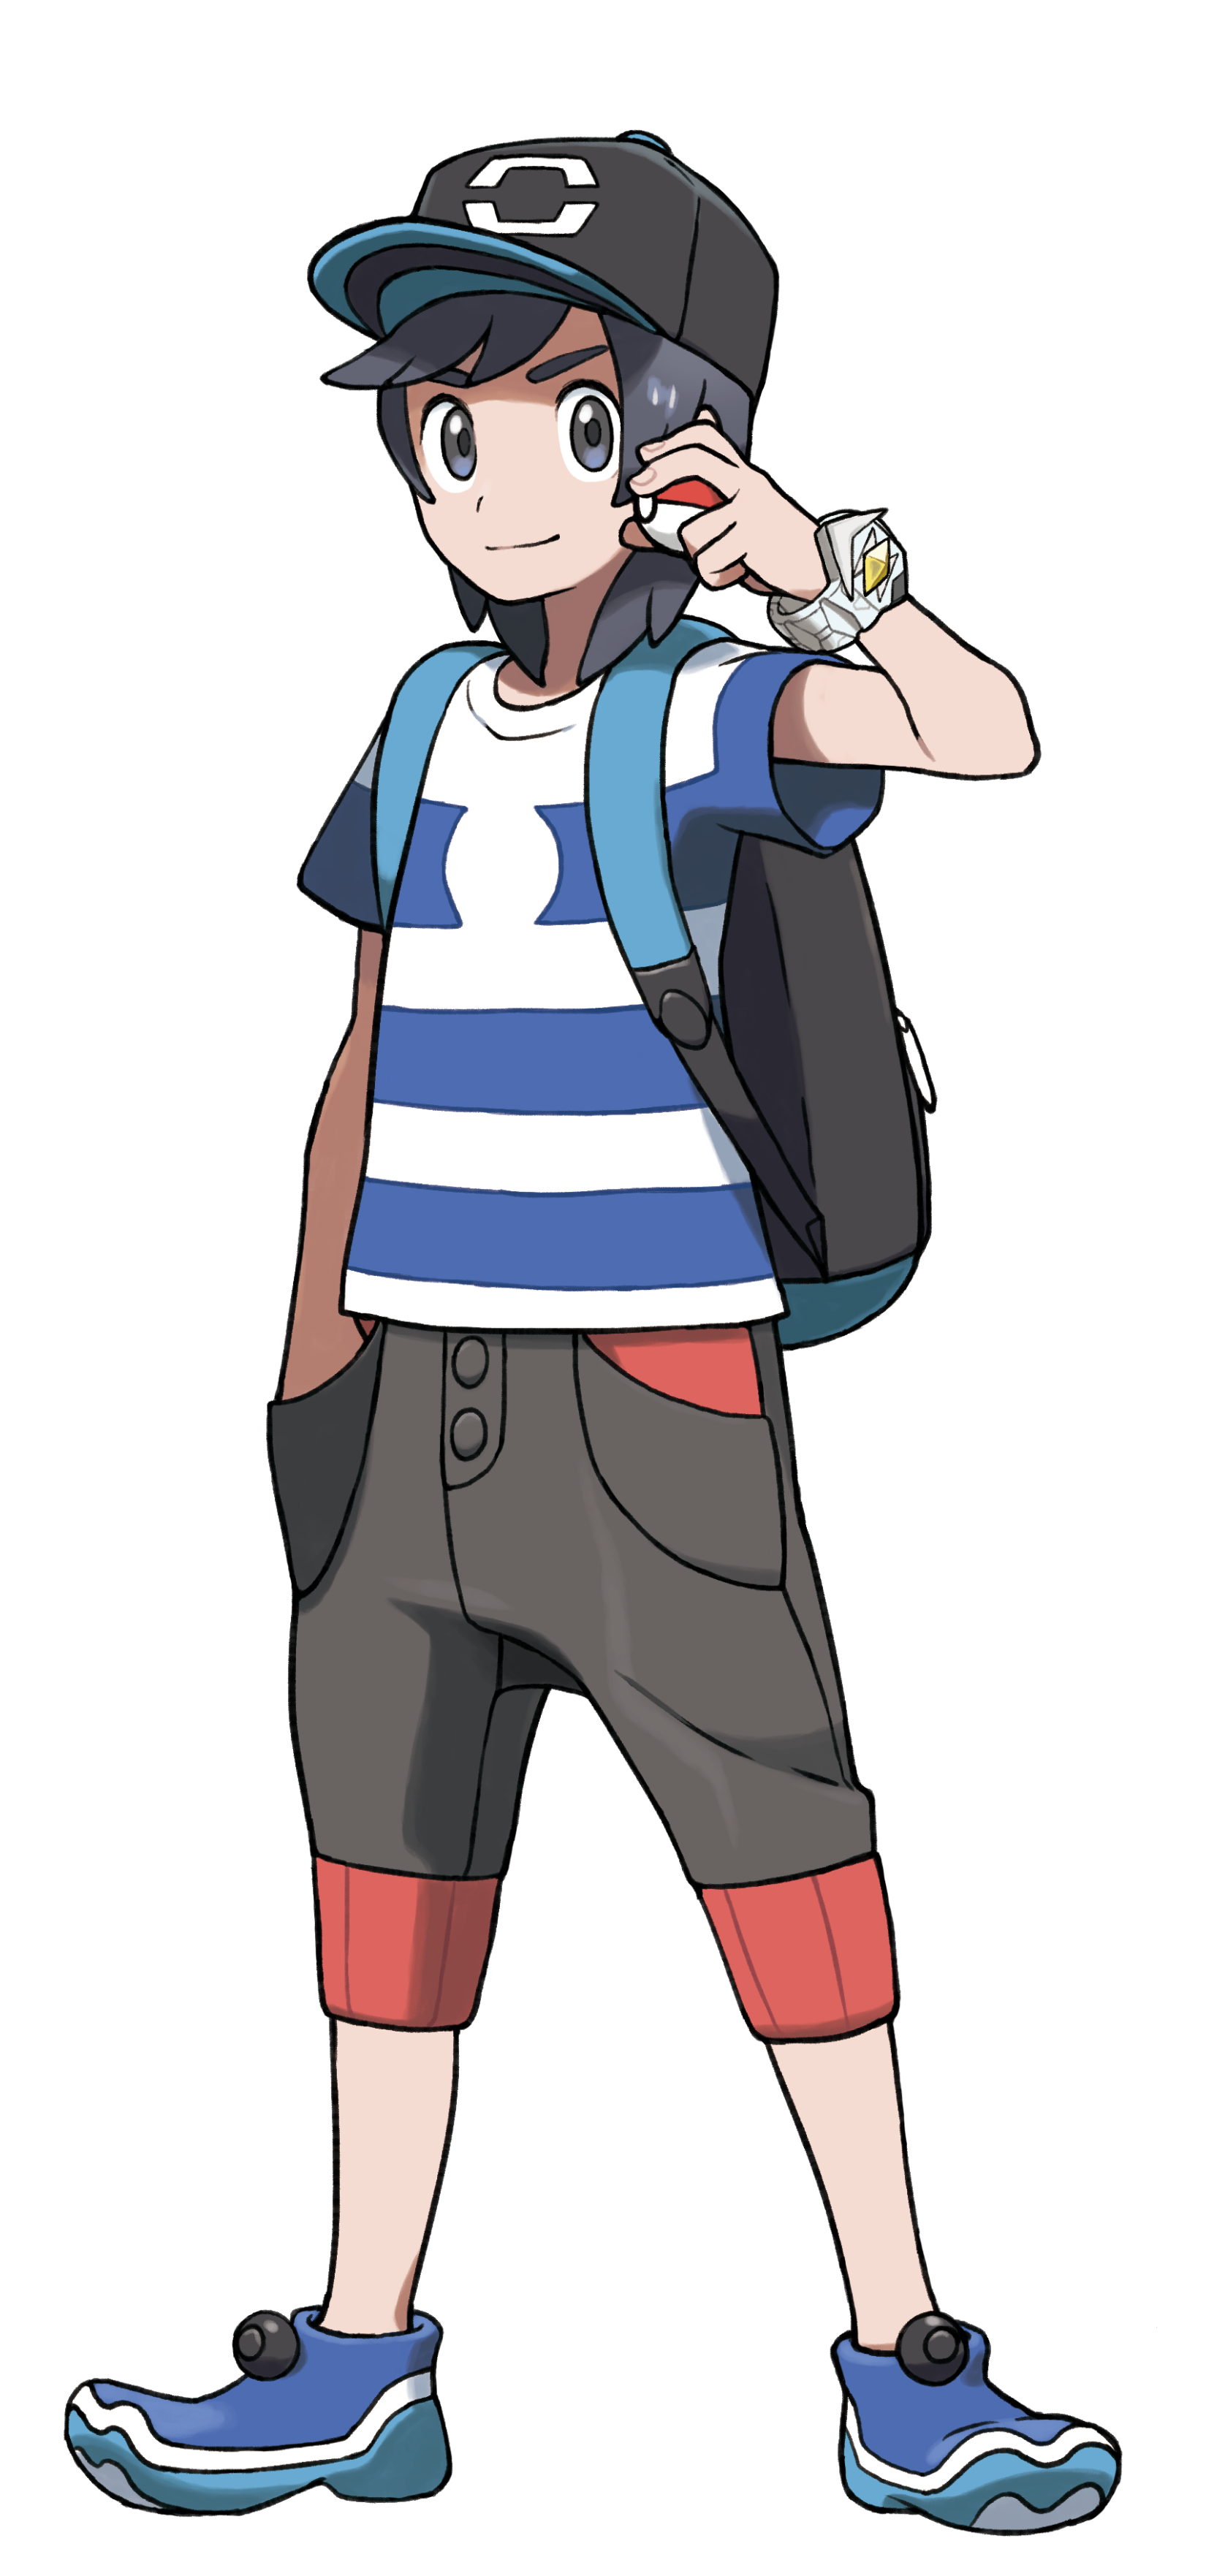 Pokemon sun png. Image nintendo fandom powered